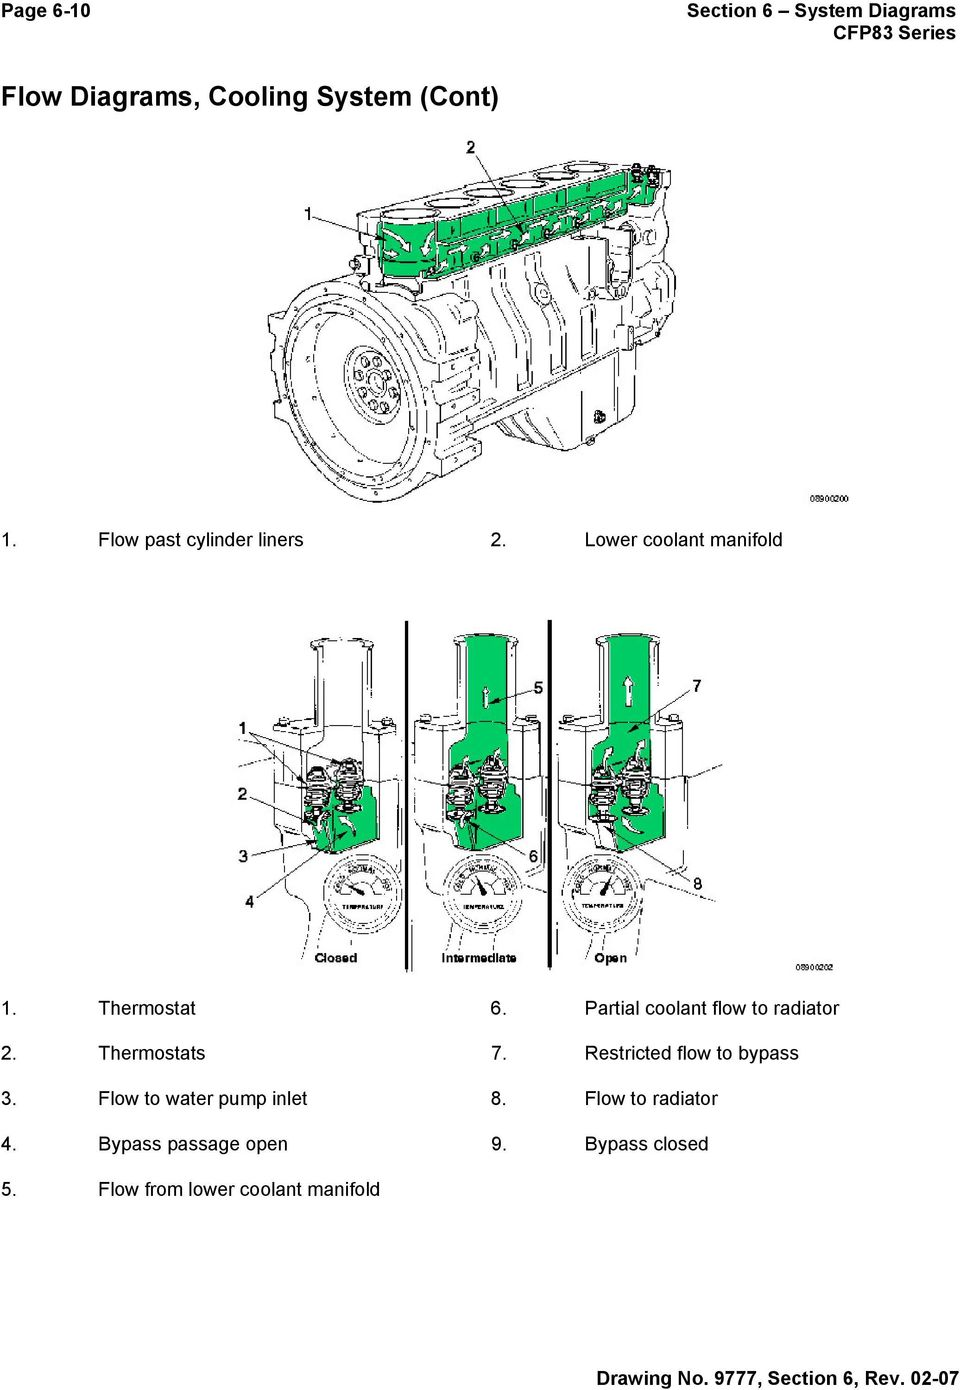 Section 6 System Diagrams Pdf Navistar 13 Liter Engine Diagram Partial Coolant Flow To Radiator 2 Thermostats 7 Restricted Bypass 3